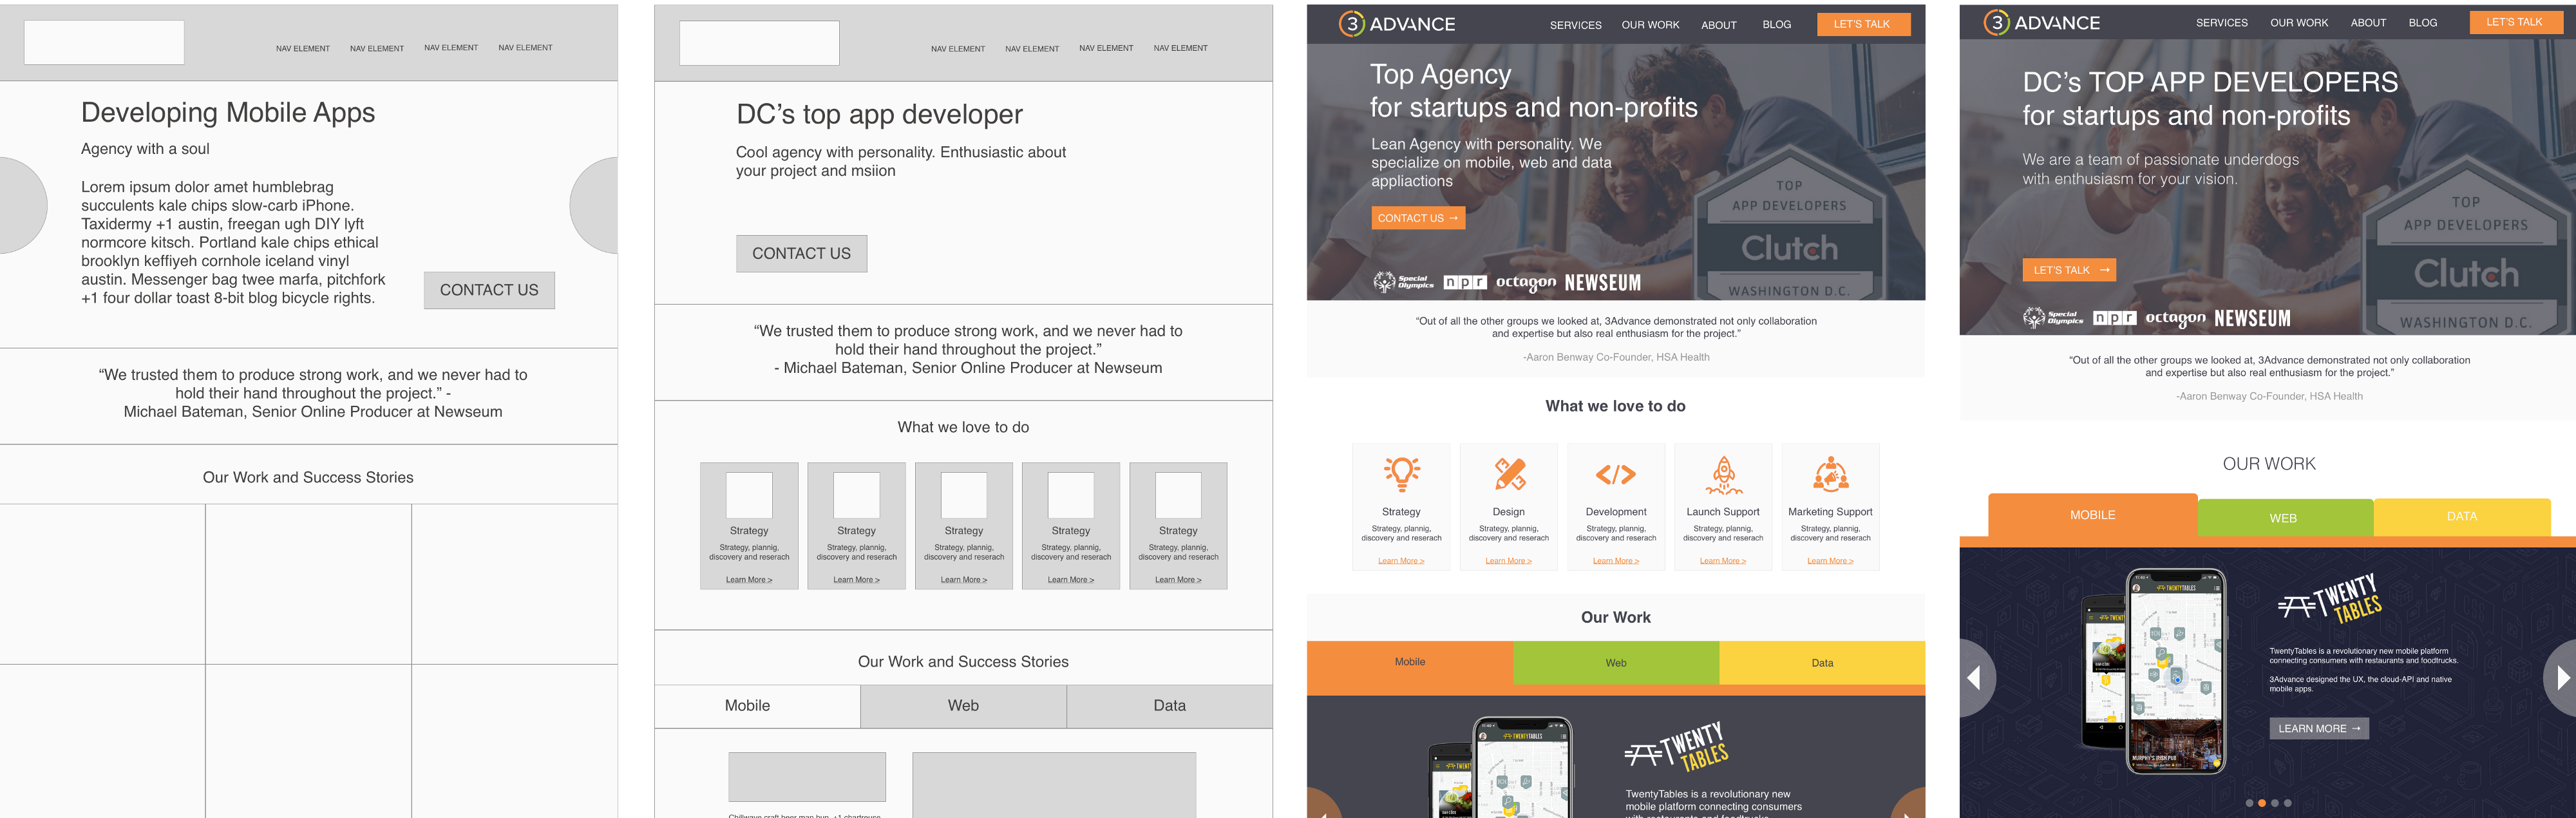 Redesigning Website For Dc S Top App Development Agency A Ux Case Study By Tim Kachko Ux Collective